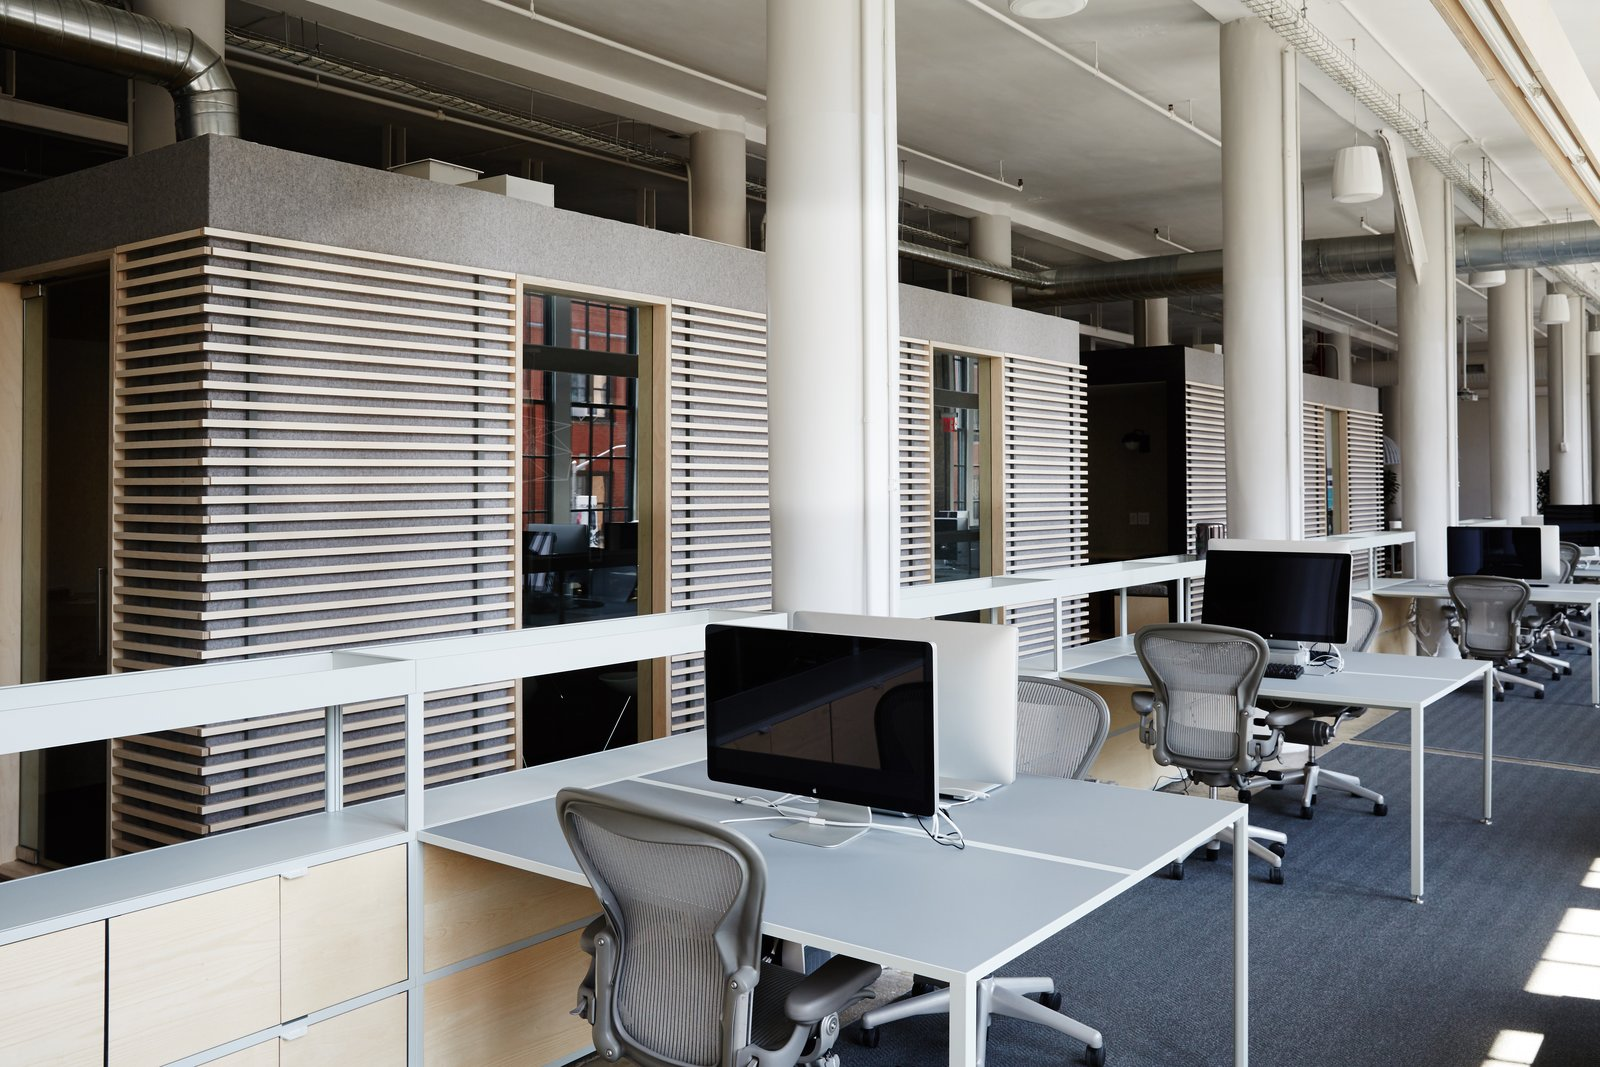 A HAY New Order desk system furnishes the workspace.